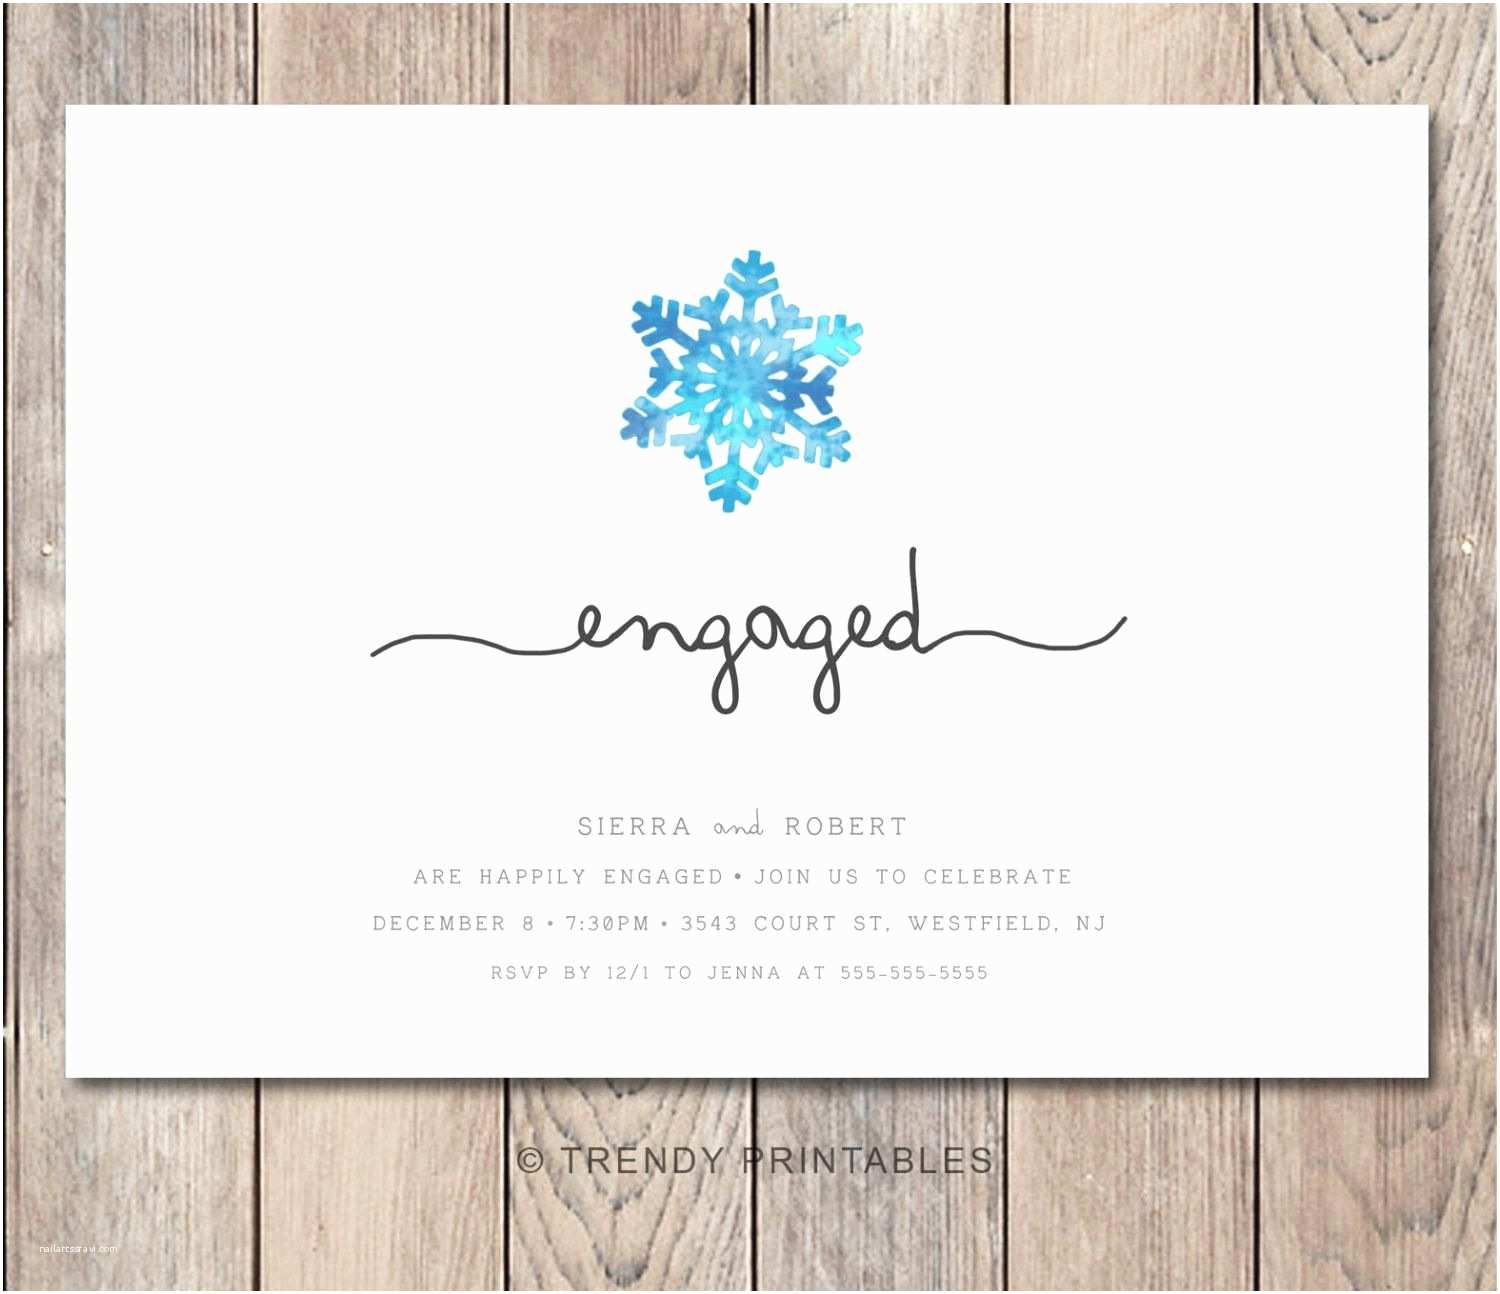 Engagement Party Invitations Engagement Party Modern Engagement Party Invitations